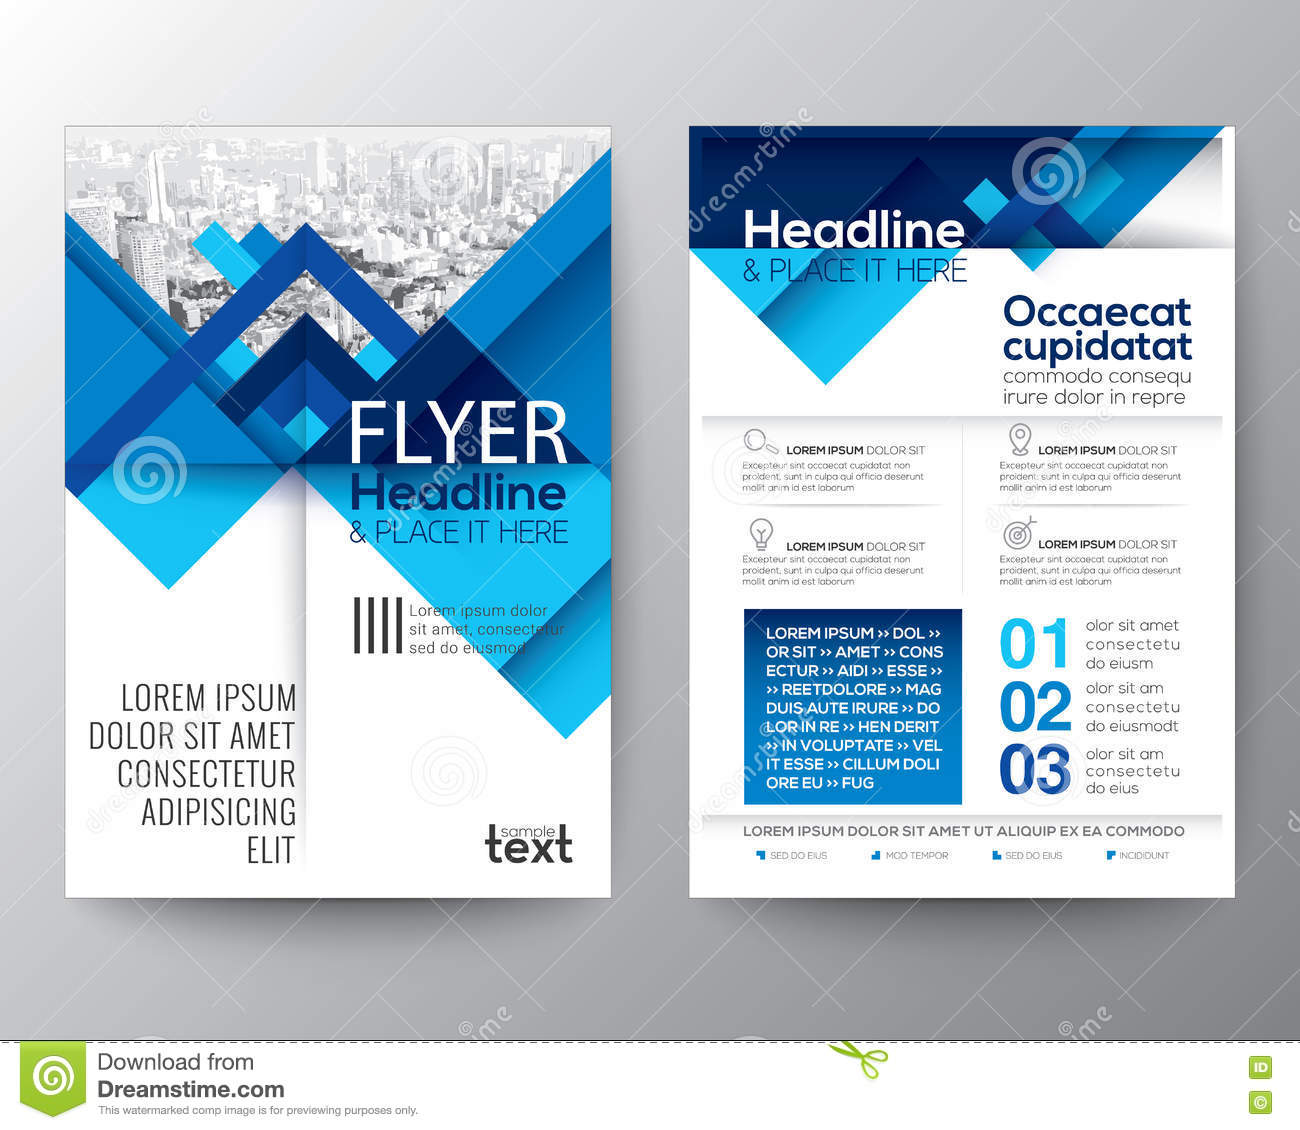 Poster design free template - Abstract Background Brochure Design Flyer Geometric Layout Poster